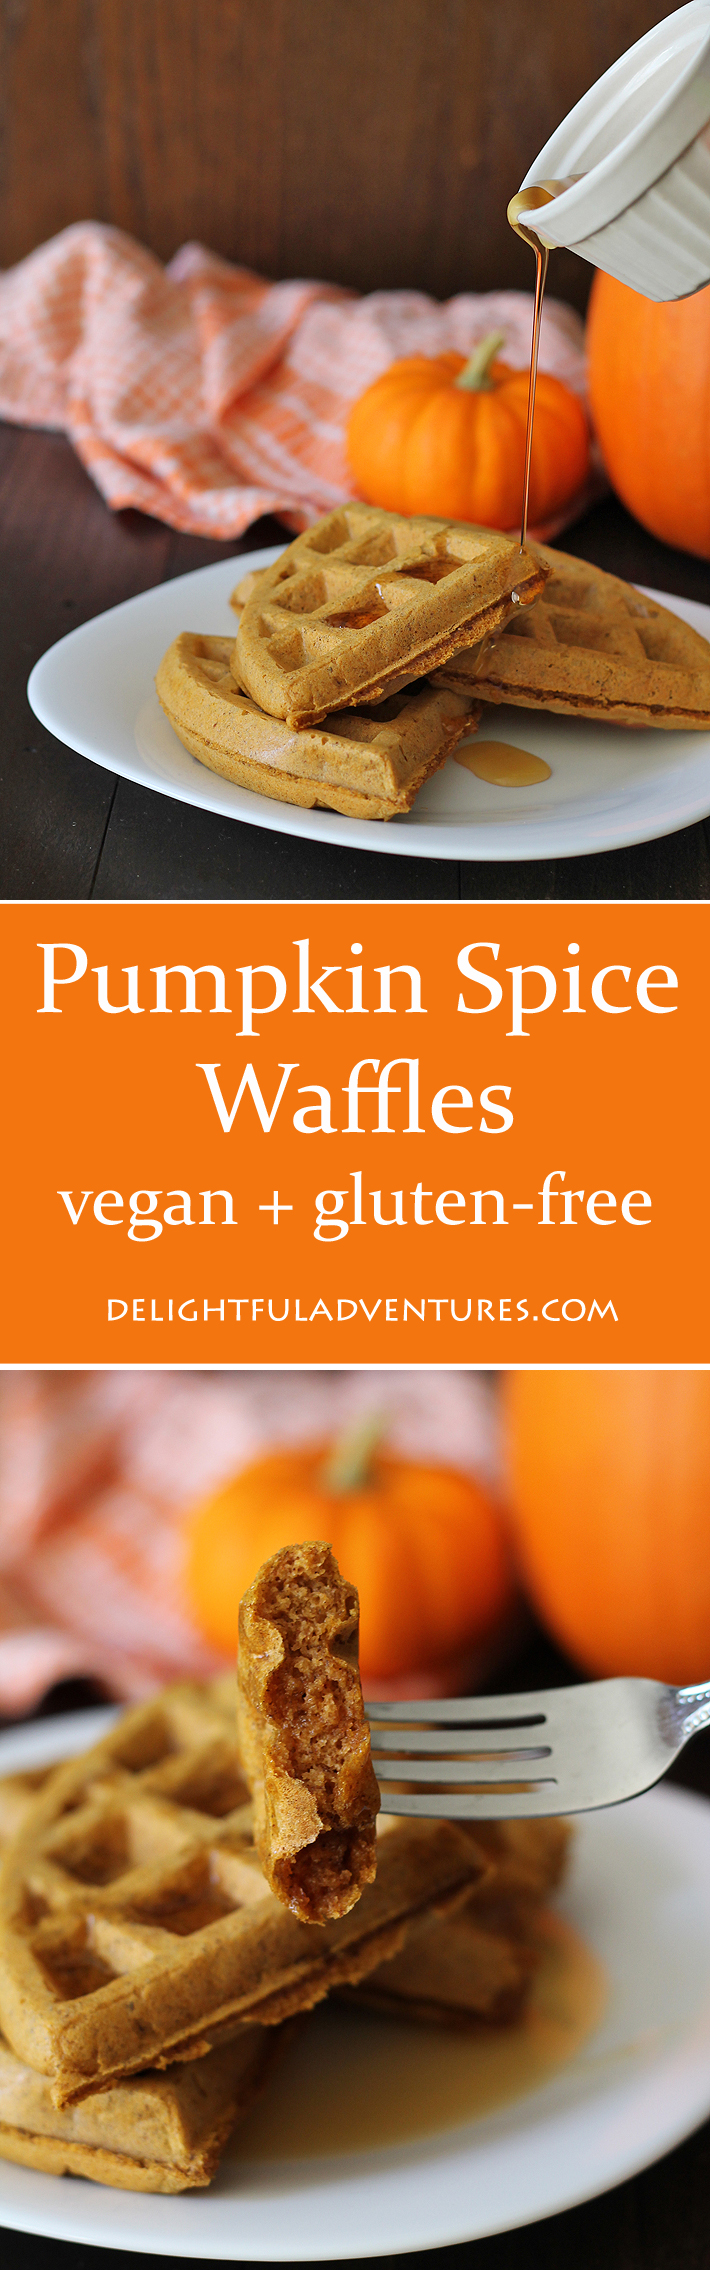 Satisfy your craving for pumpkin spice with these vegan gluten free pumpkin spice waffles at breakfast. Crispy on the outside, soft and fluffy inside!